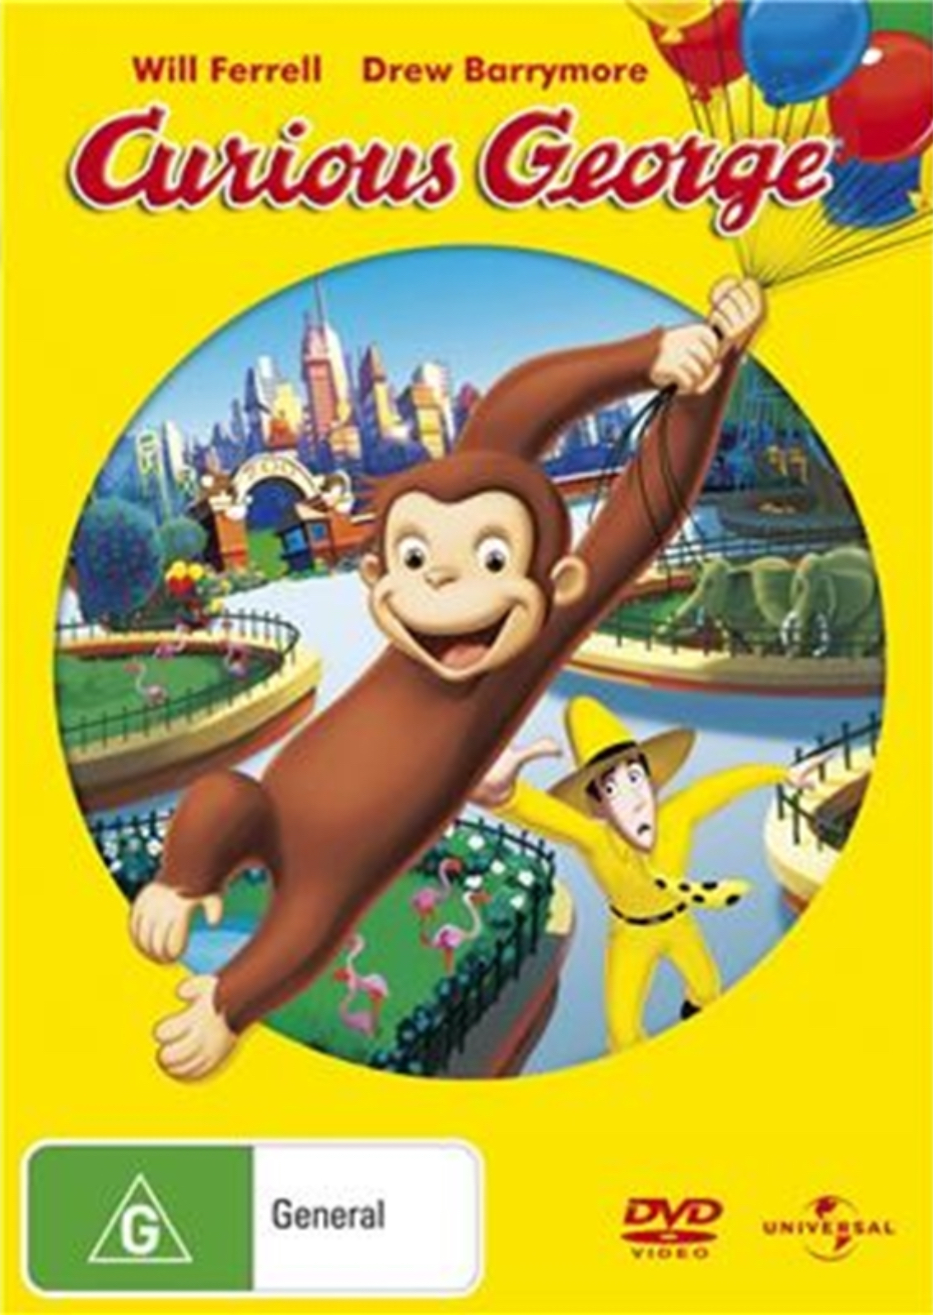 Curious George videography